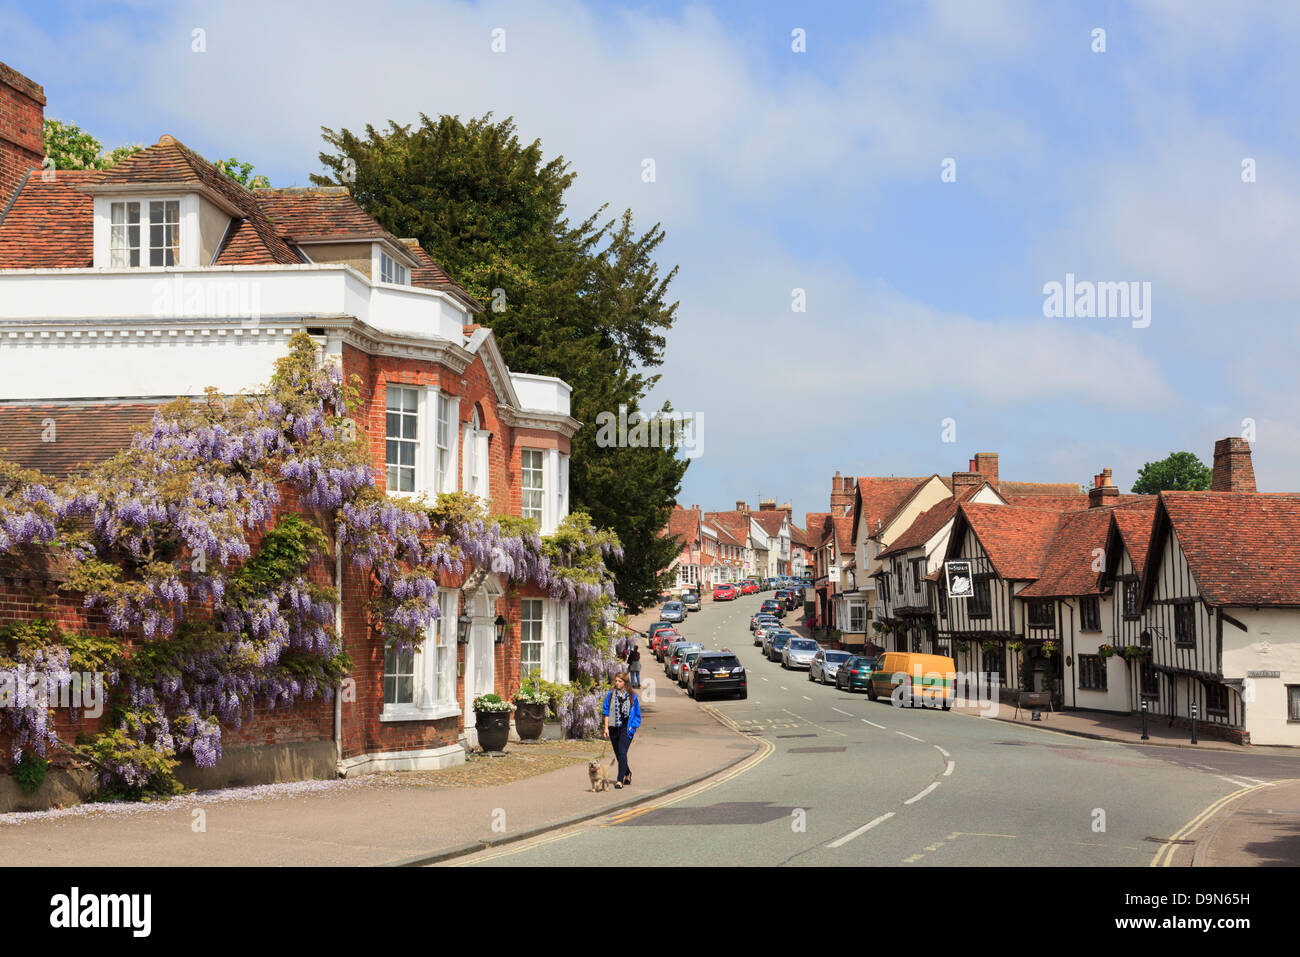 View along the main street in picturesque historic medieval village centre. Lavenham, Suffolk, England, UK, Britain - Stock Image